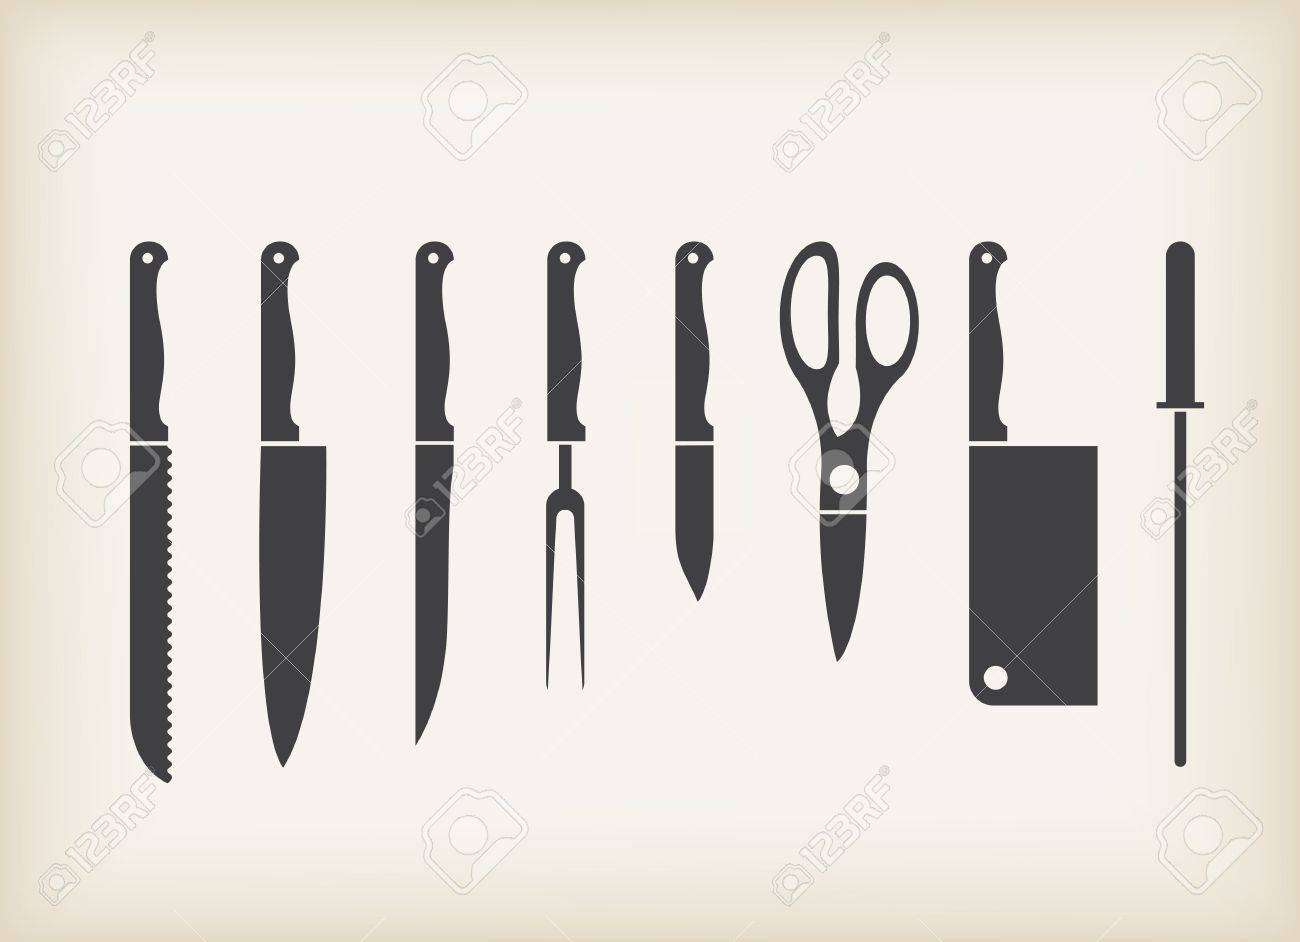 Kitchen Knife Vector icons of kitchen knife stylized set royalty free cliparts, vectors